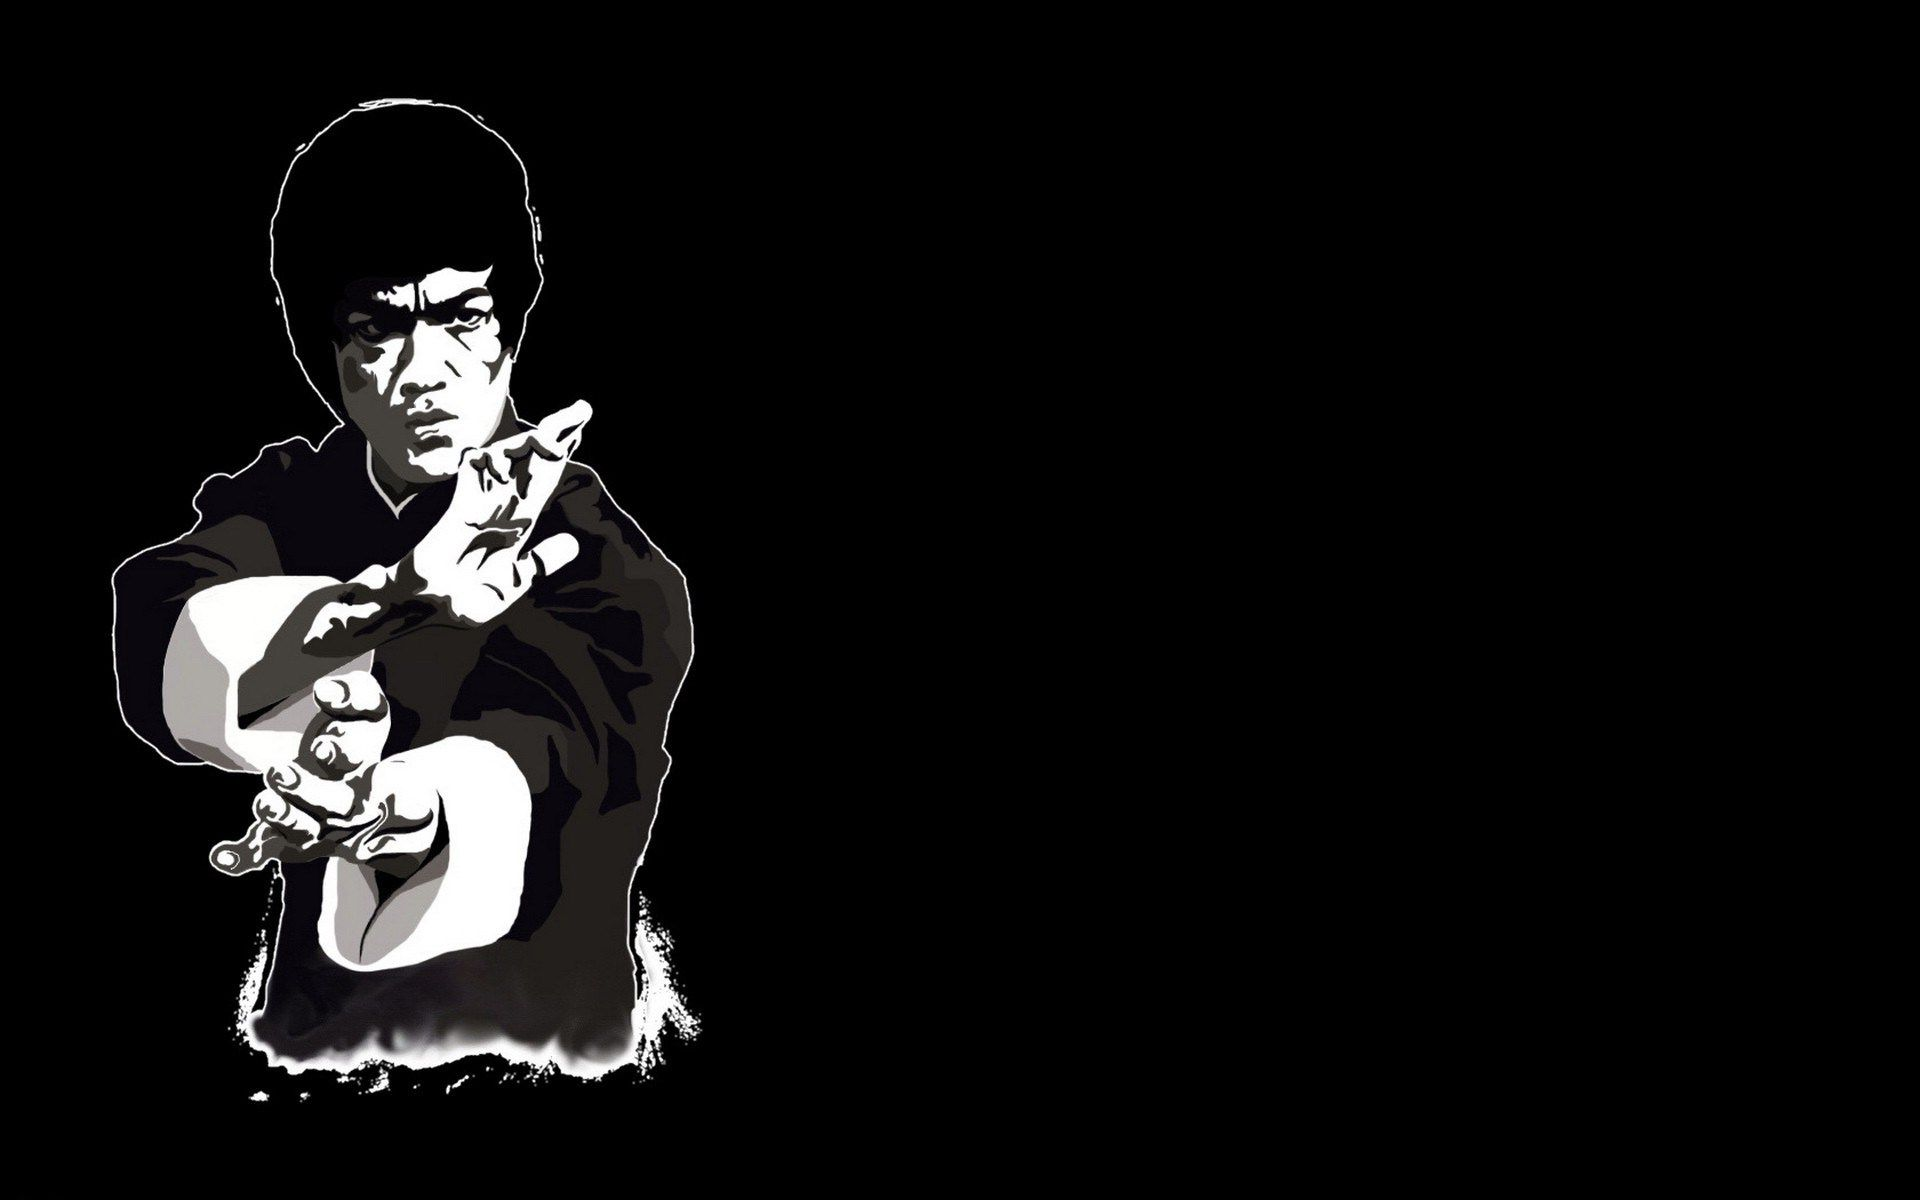 Free Download Bruce Lee Wallpapers Hd Bruce Lee Pictures Iphone Wallpaper Wallpaper Downloads